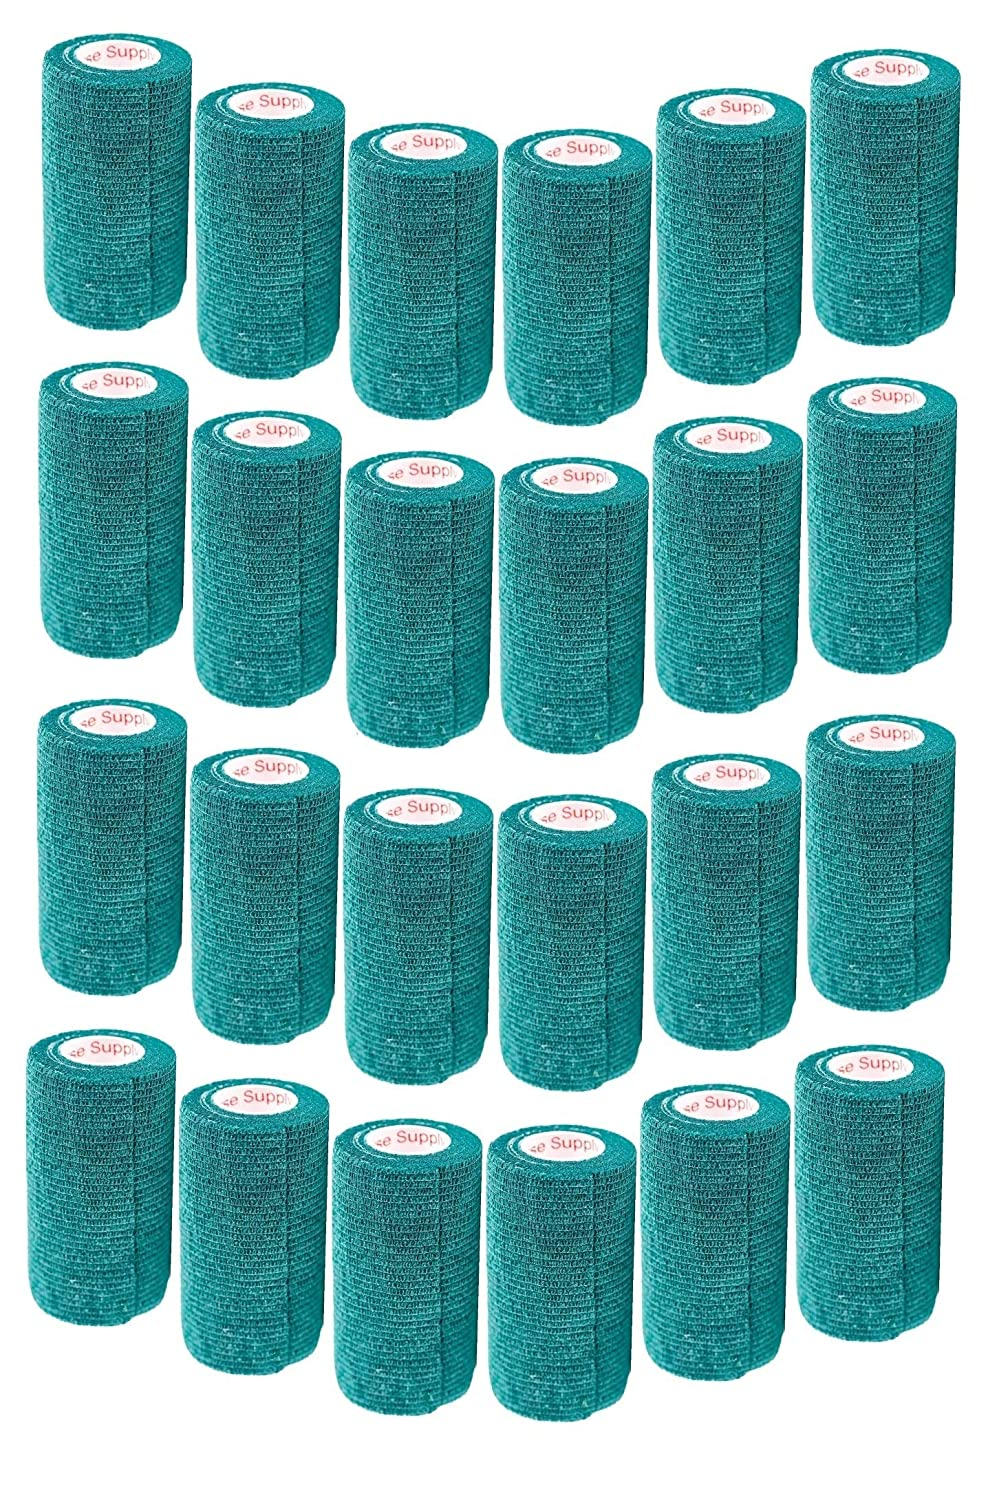 4 Inch Vet Wrap Tape Bulk (Assorted Colors) (6, 12, 18, oder 24 Packs) Self-Adhesive selbst Adherent Adhering Flex Bandage Rap Grip Roll für Hund Katze Pet Horse